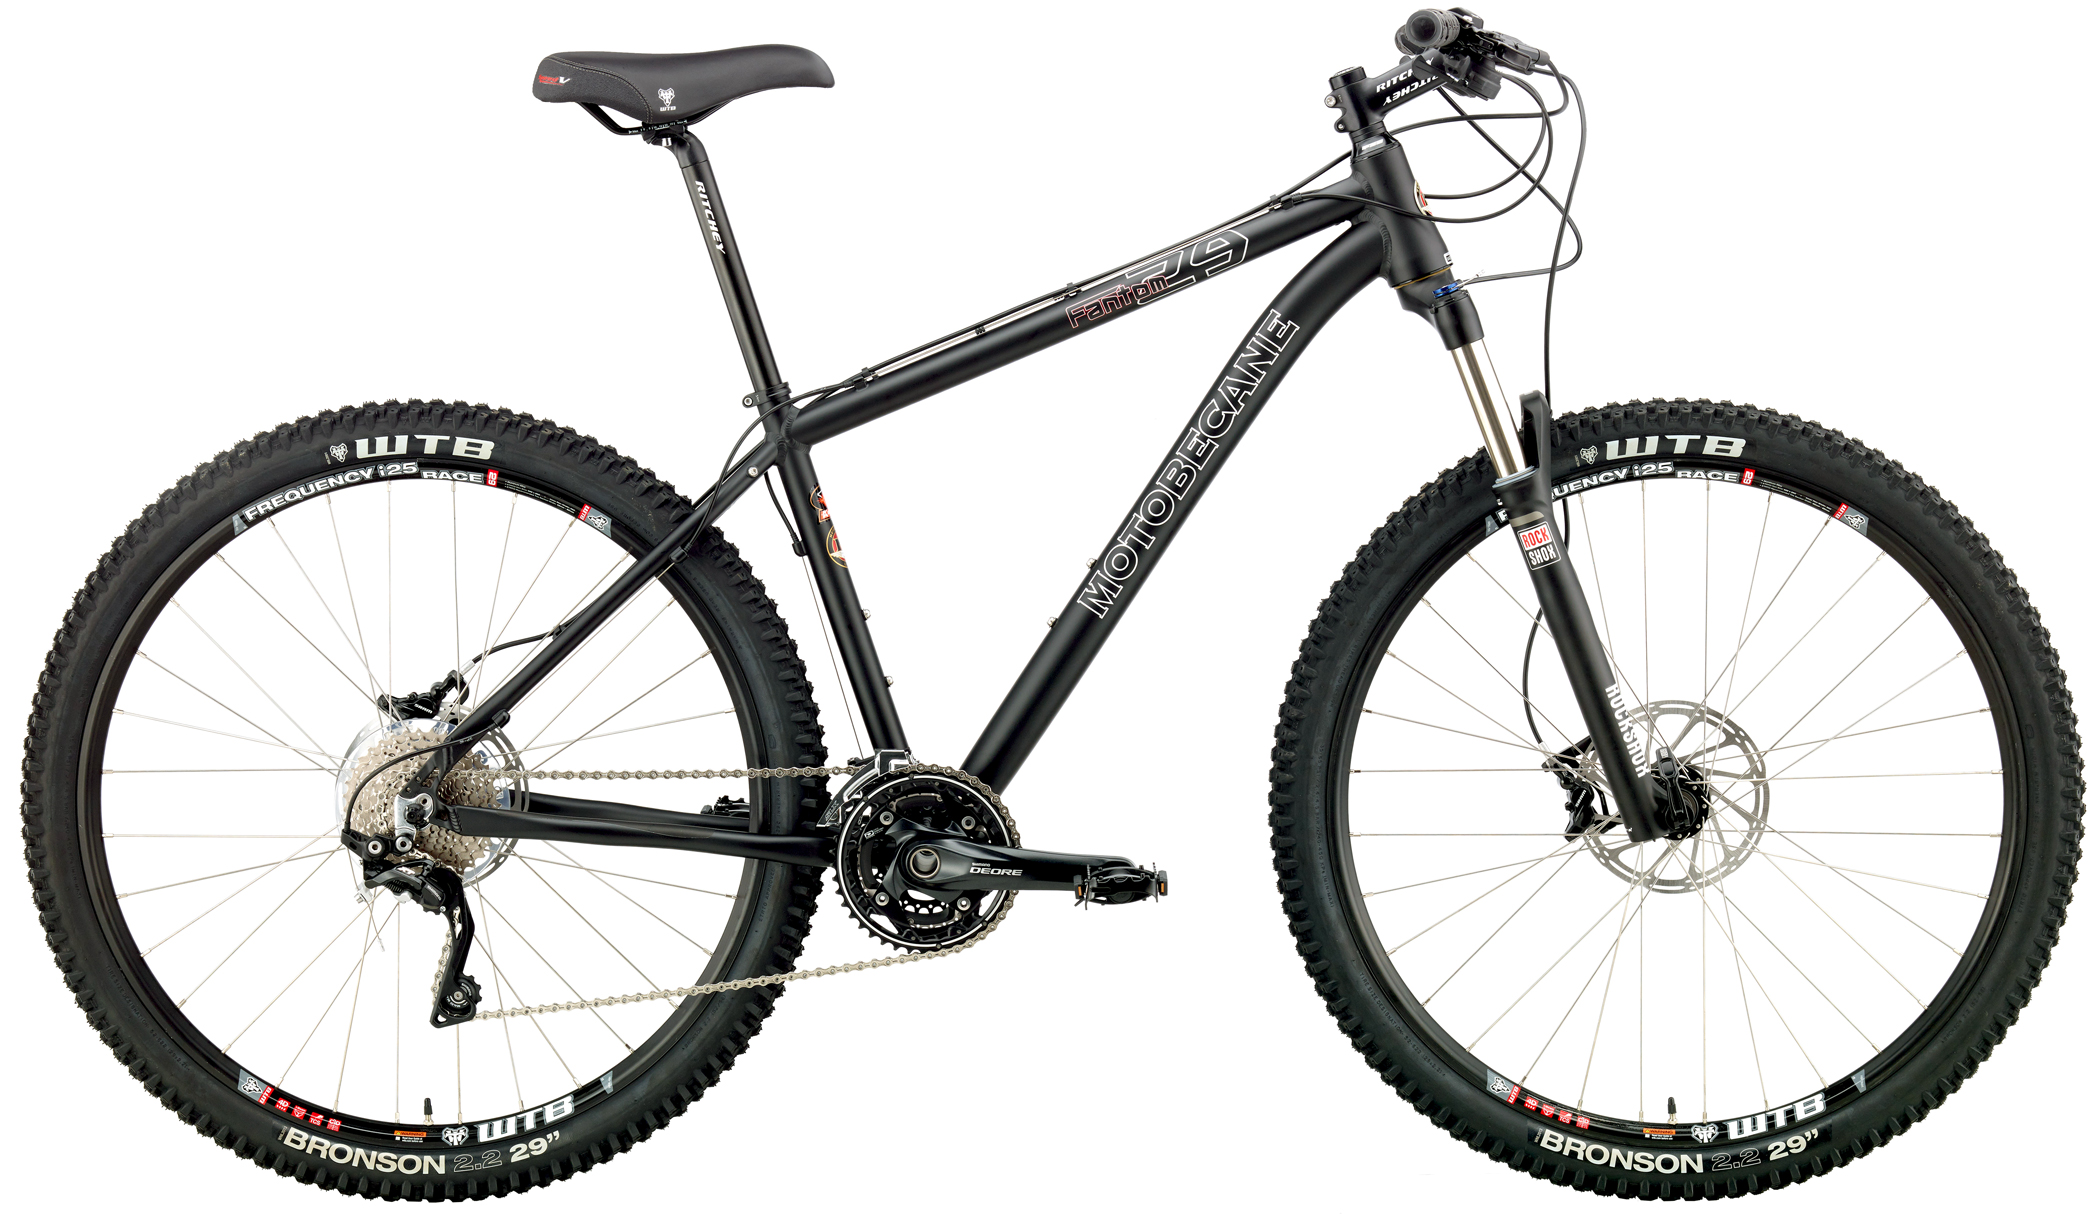 Bikes 2018 Motobecane Fantom 29 Elite Hard Tail Mountain Bike Image